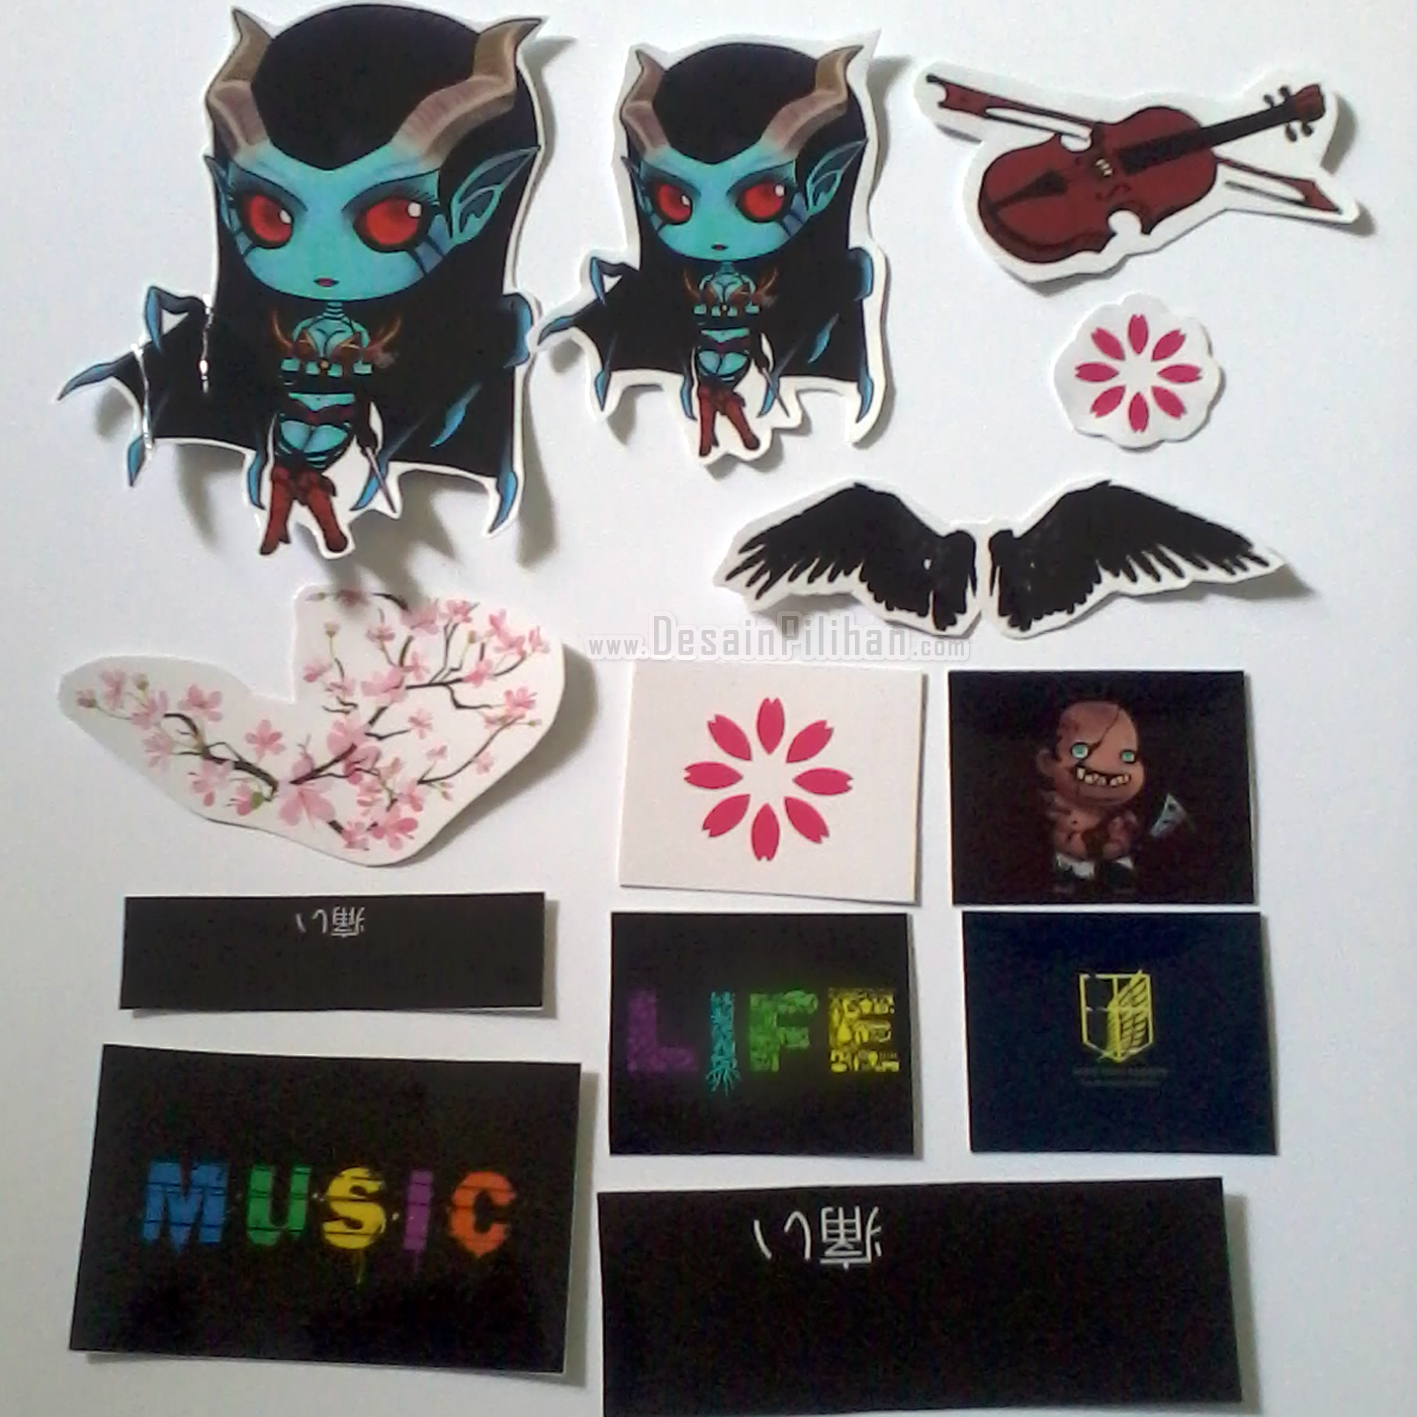 CUTTING STICKER TRANSPARAN CUSTOM, CUTTING STICKER MIX PICTURE, STICKER MUSIC, STICKER LIFE